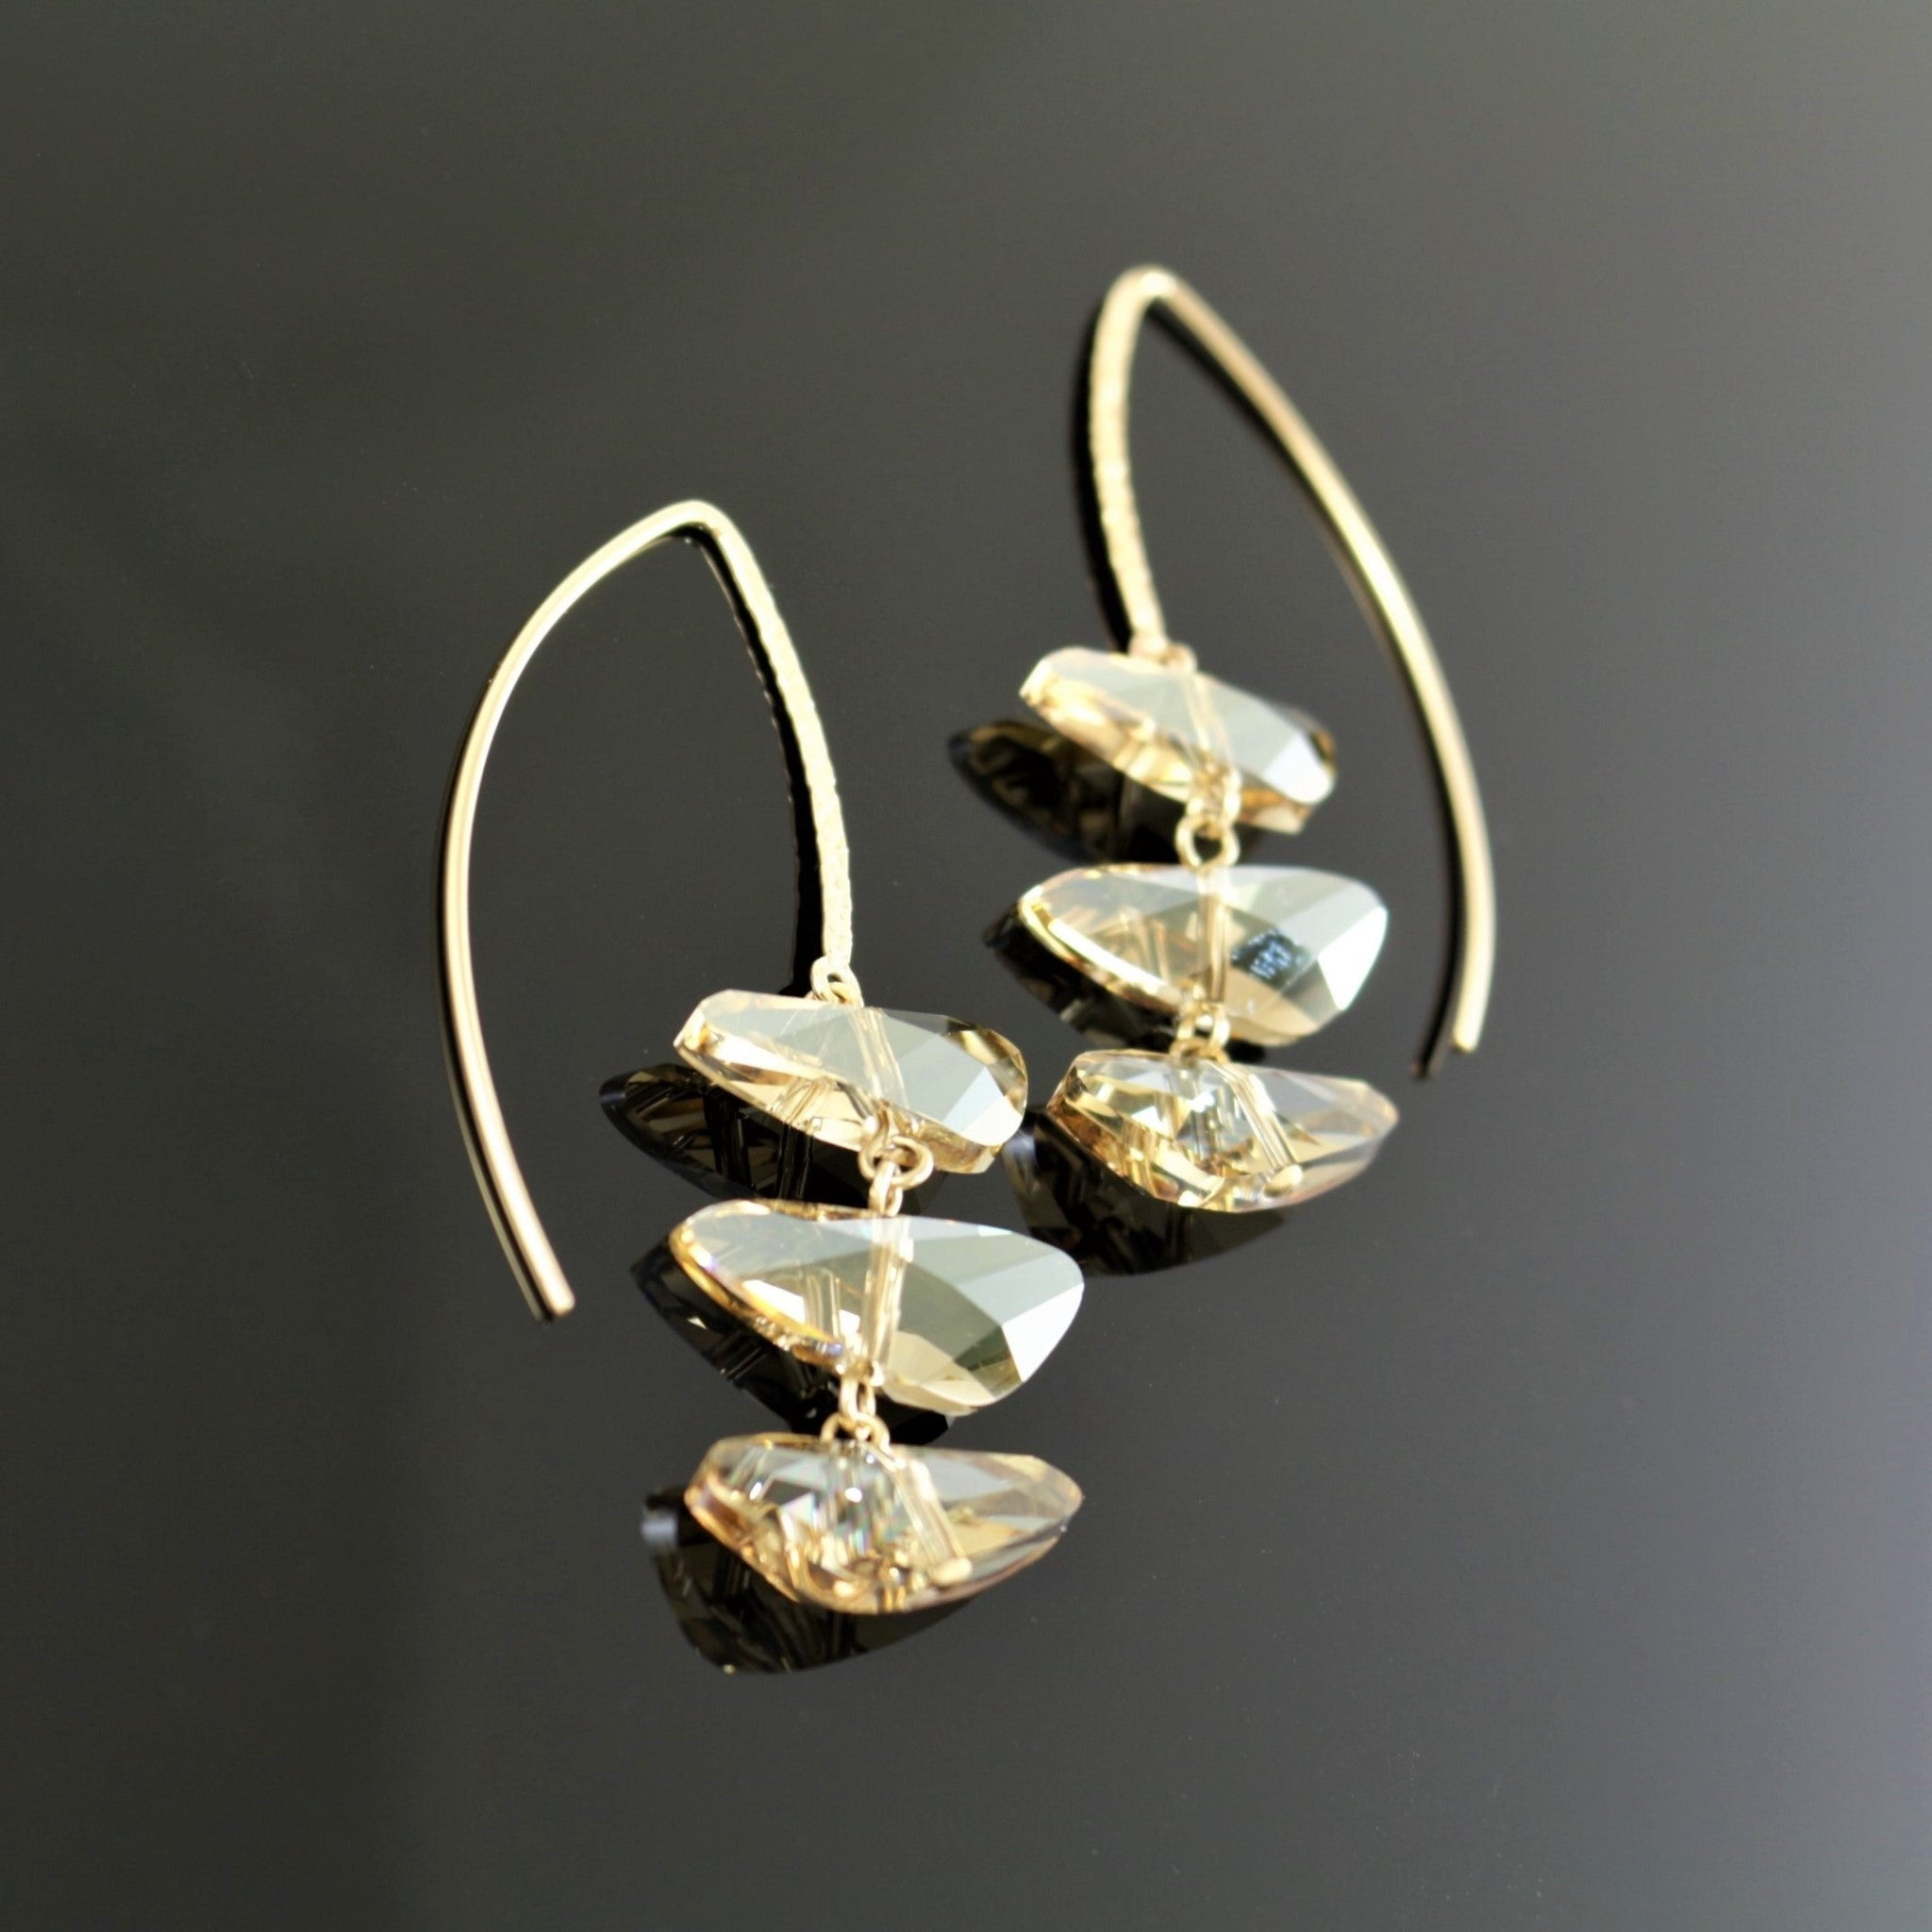 Reflections Earrings in Golden Shadow